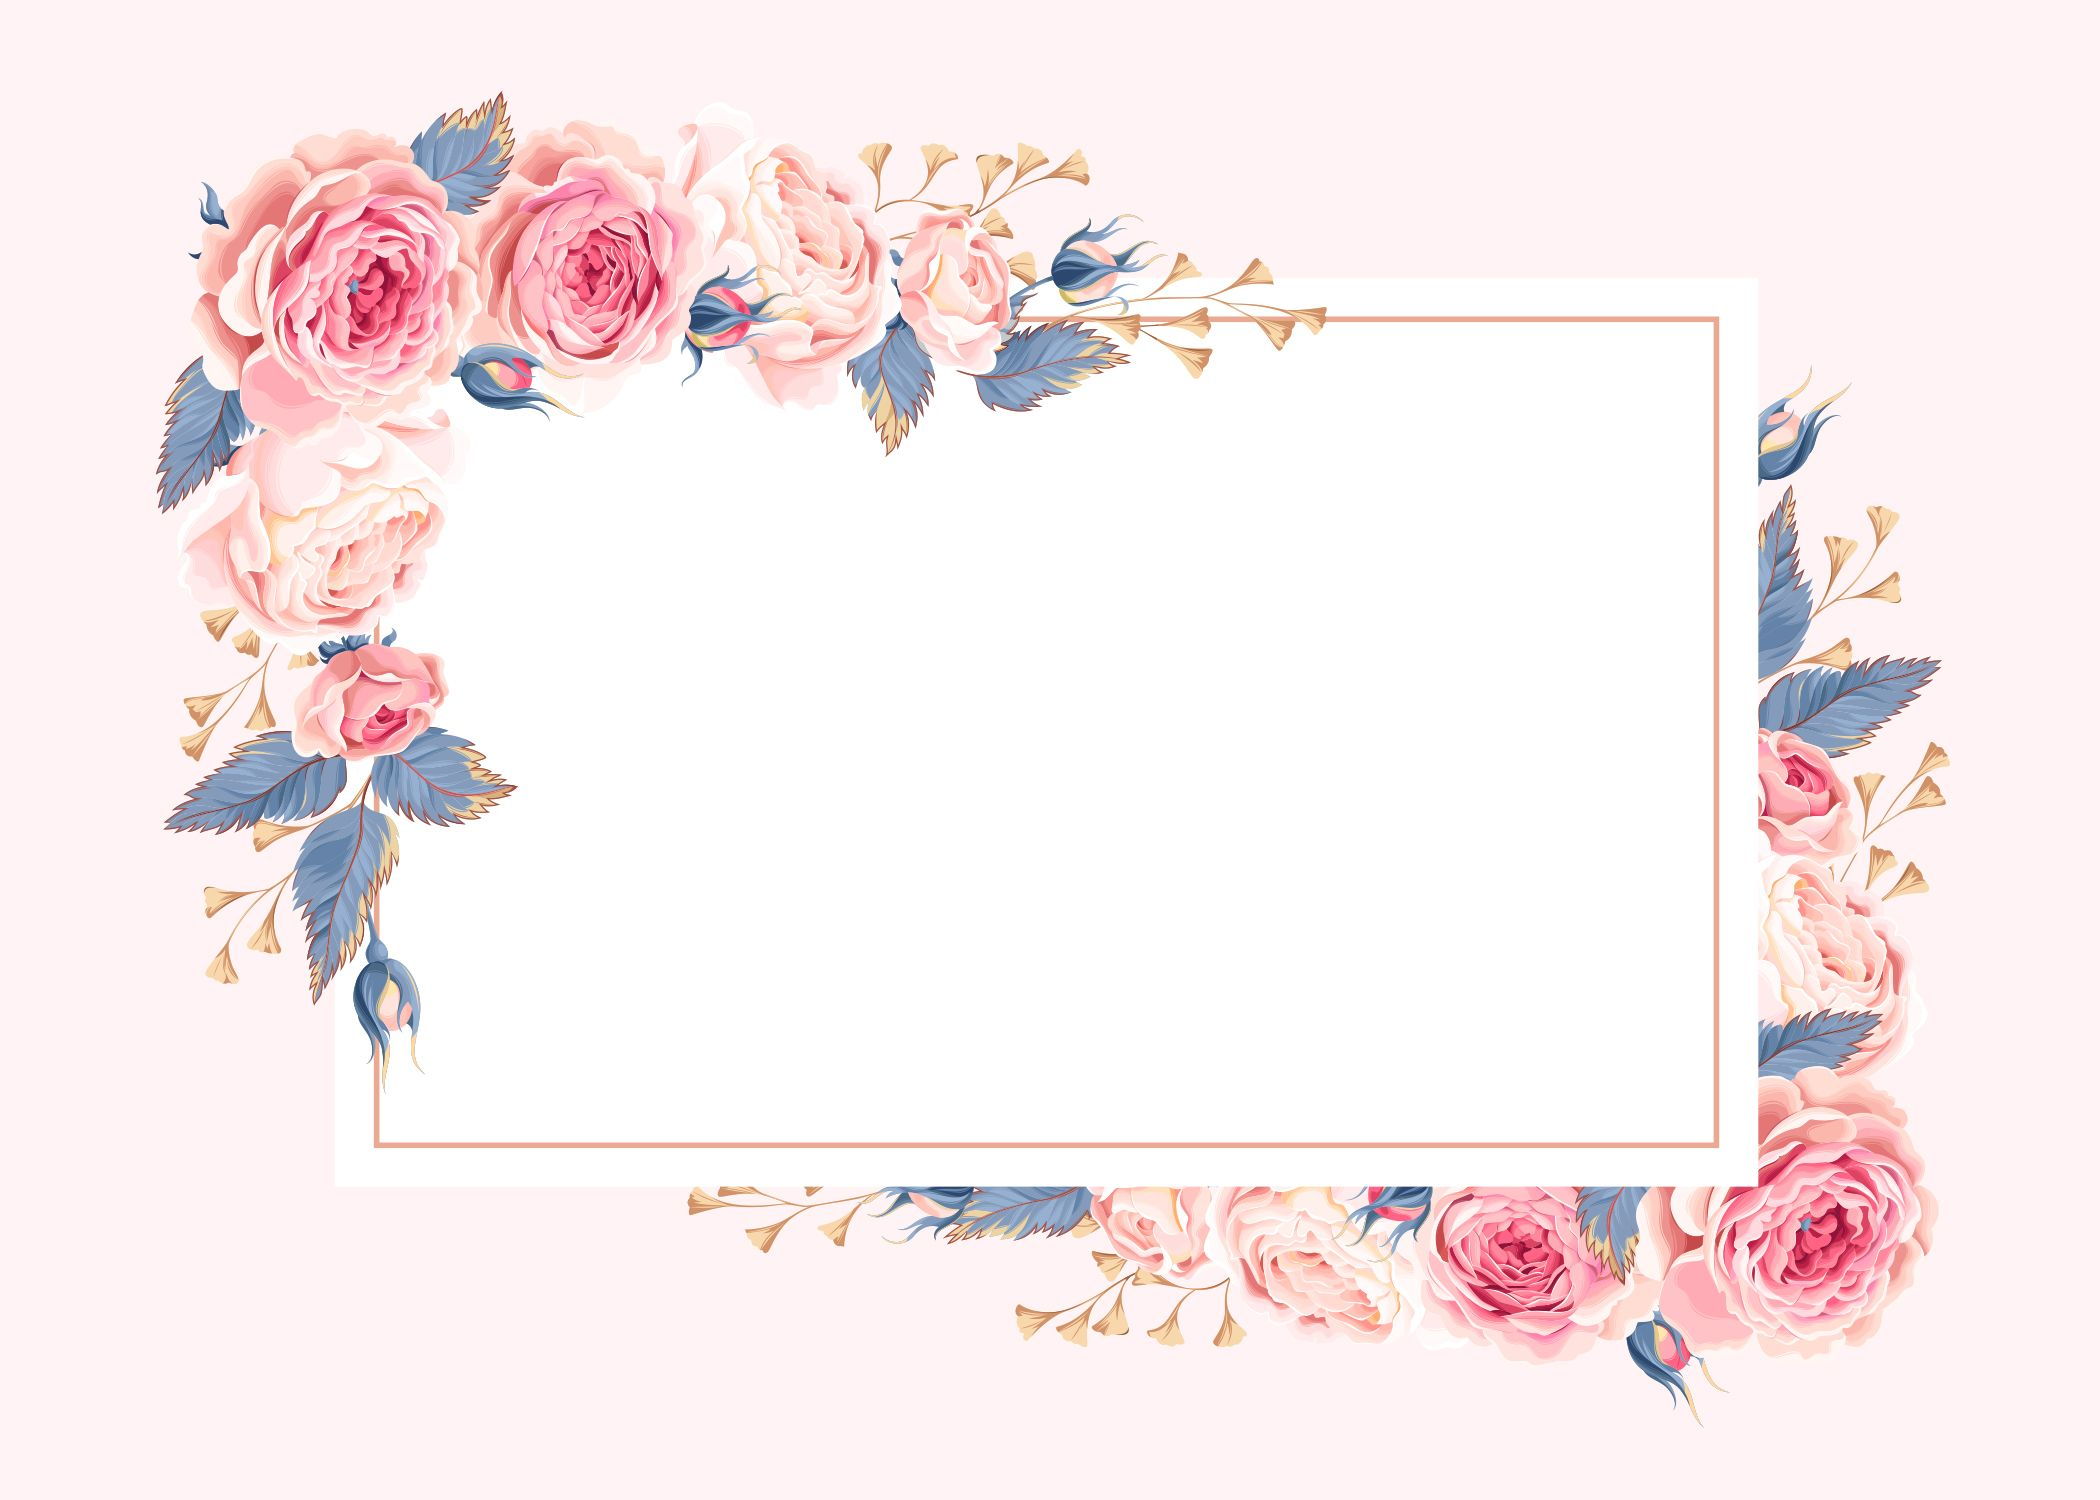 Climbing Roses Rsvp Card Template Free Greetings Island Free Printable Greeting Cards Free Greeting Card Templates Printable Greeting Cards